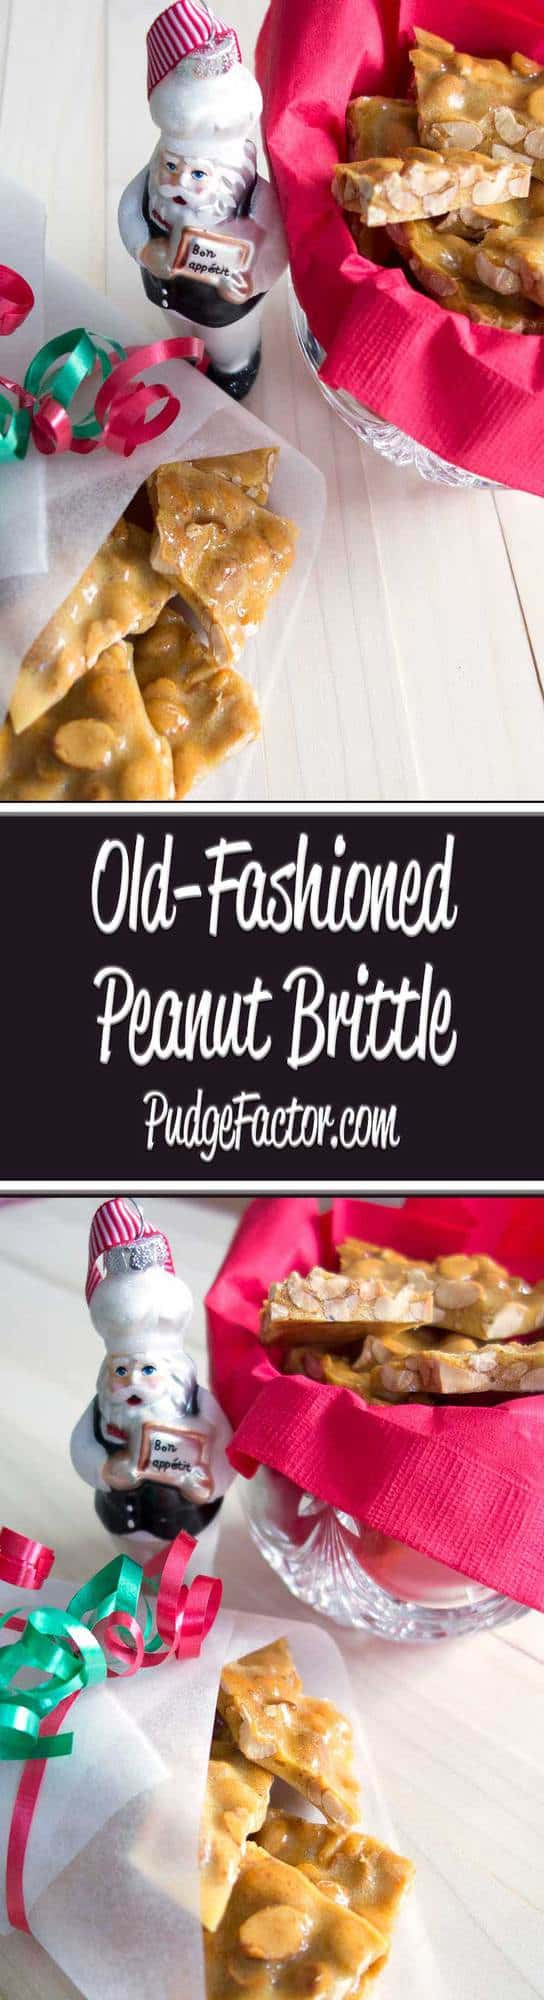 Old-Fashioned Peanut Brittle is the perfect holiday foodie gift for family and friends. It's relatively easy to make, delicious to munch on, and will keep for several weeks in an airtight container.